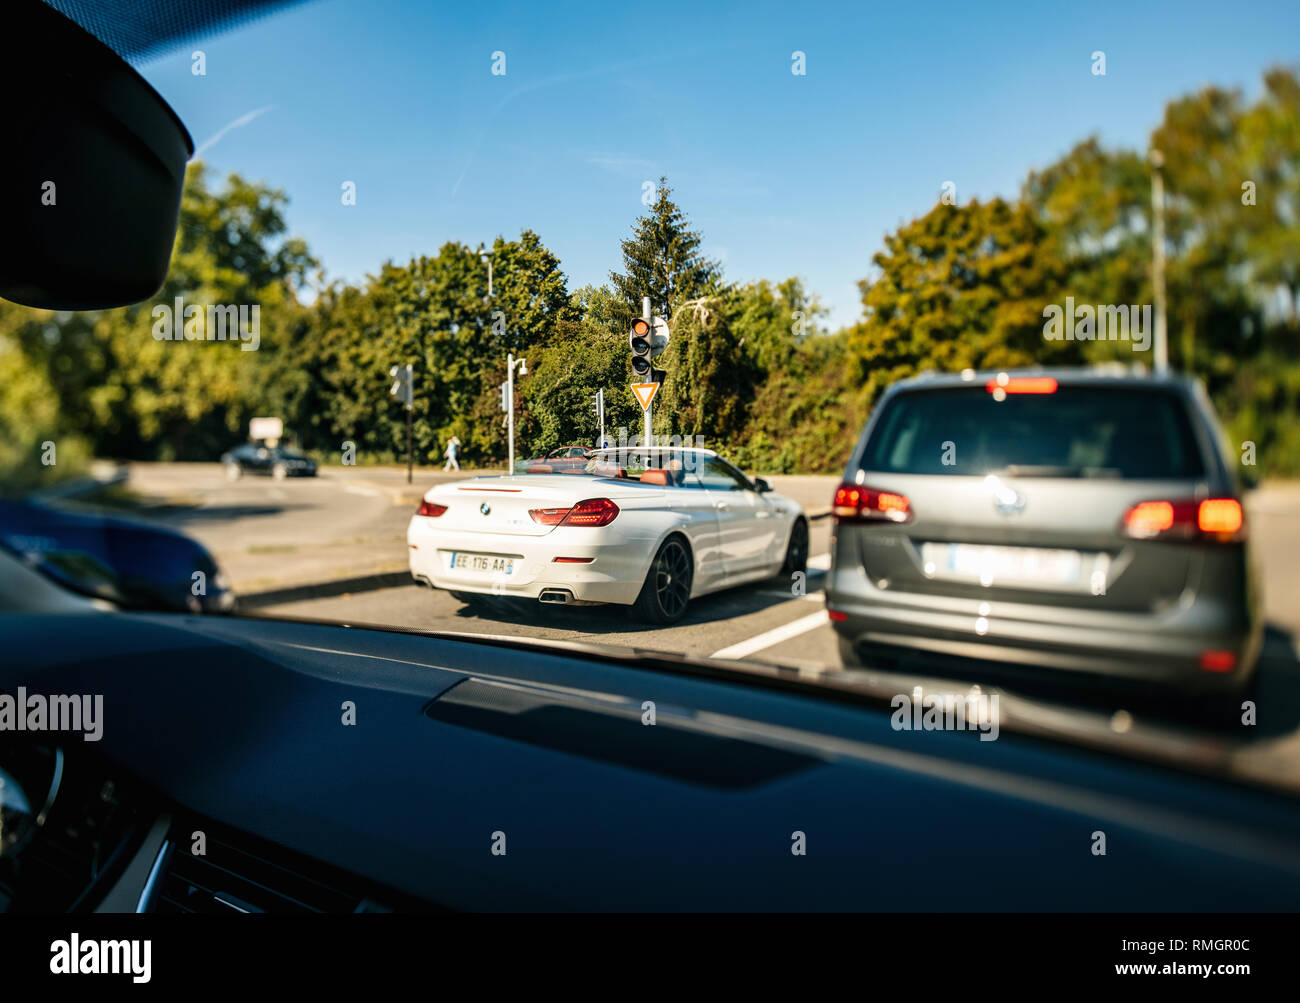 STRASBOURG, FRANCE - SEP 15, 2018: Driver pov at the intersection with luxury white convertible BMW car focus from tilt-shift lens - Stock Image